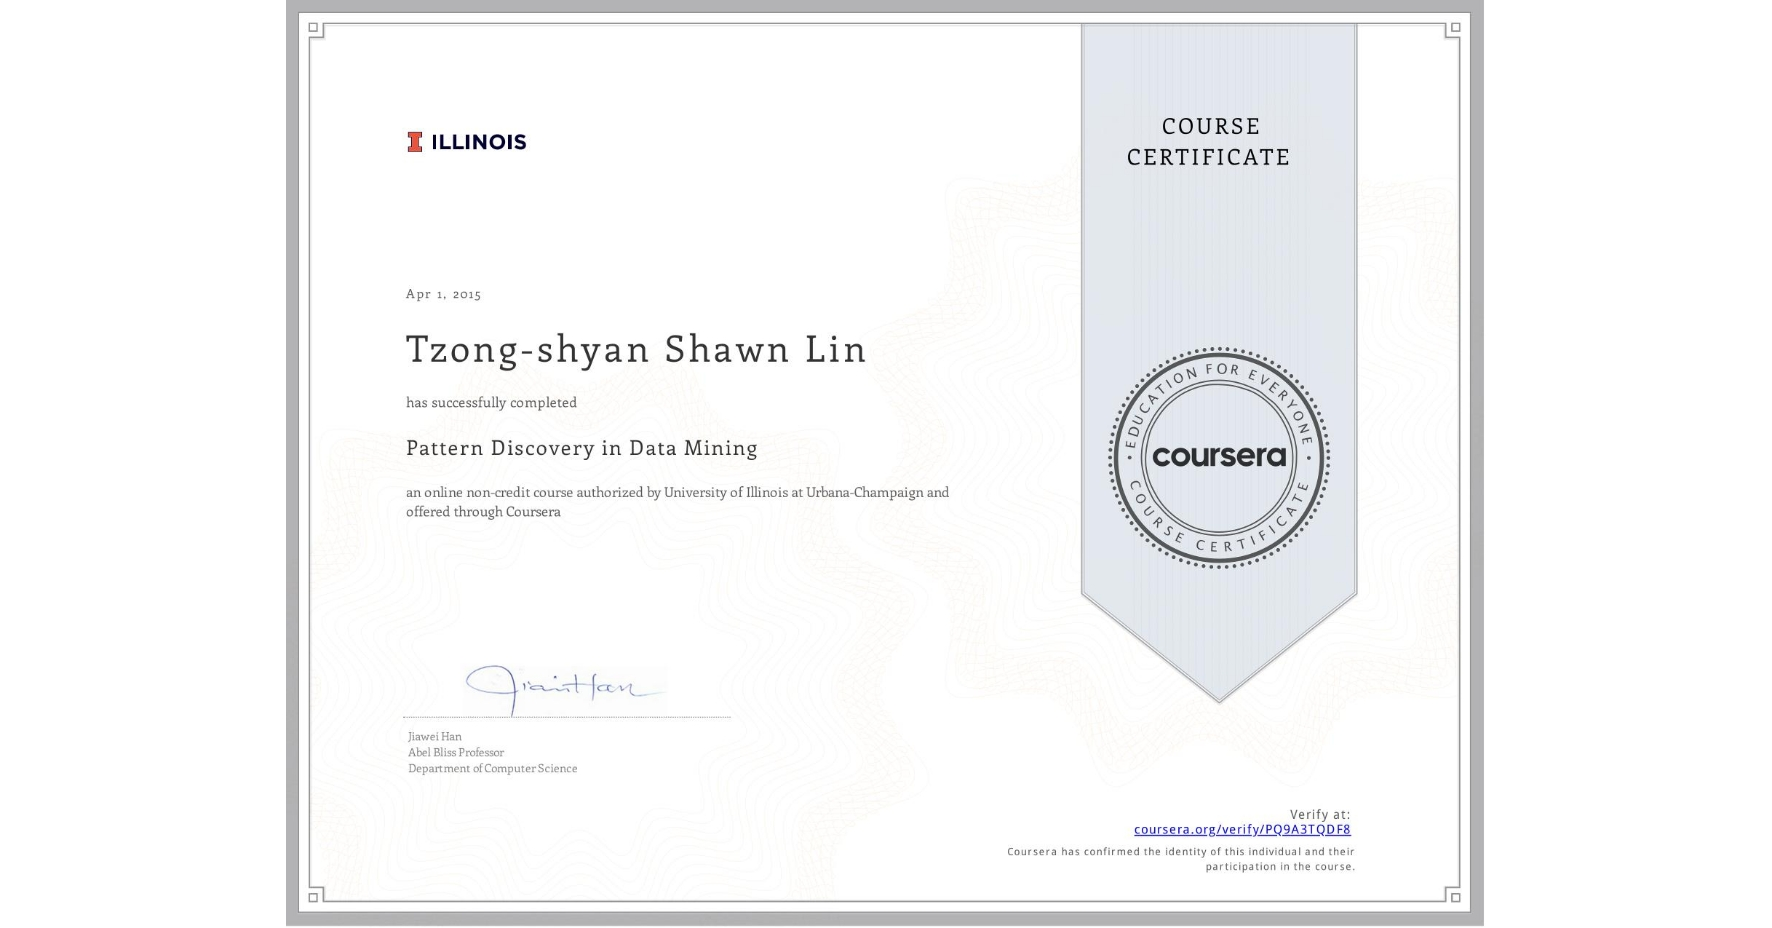 View certificate for Tzong-shyan Shawn Lin, Pattern Discovery in Data Mining, an online non-credit course authorized by University of Illinois at Urbana-Champaign and offered through Coursera